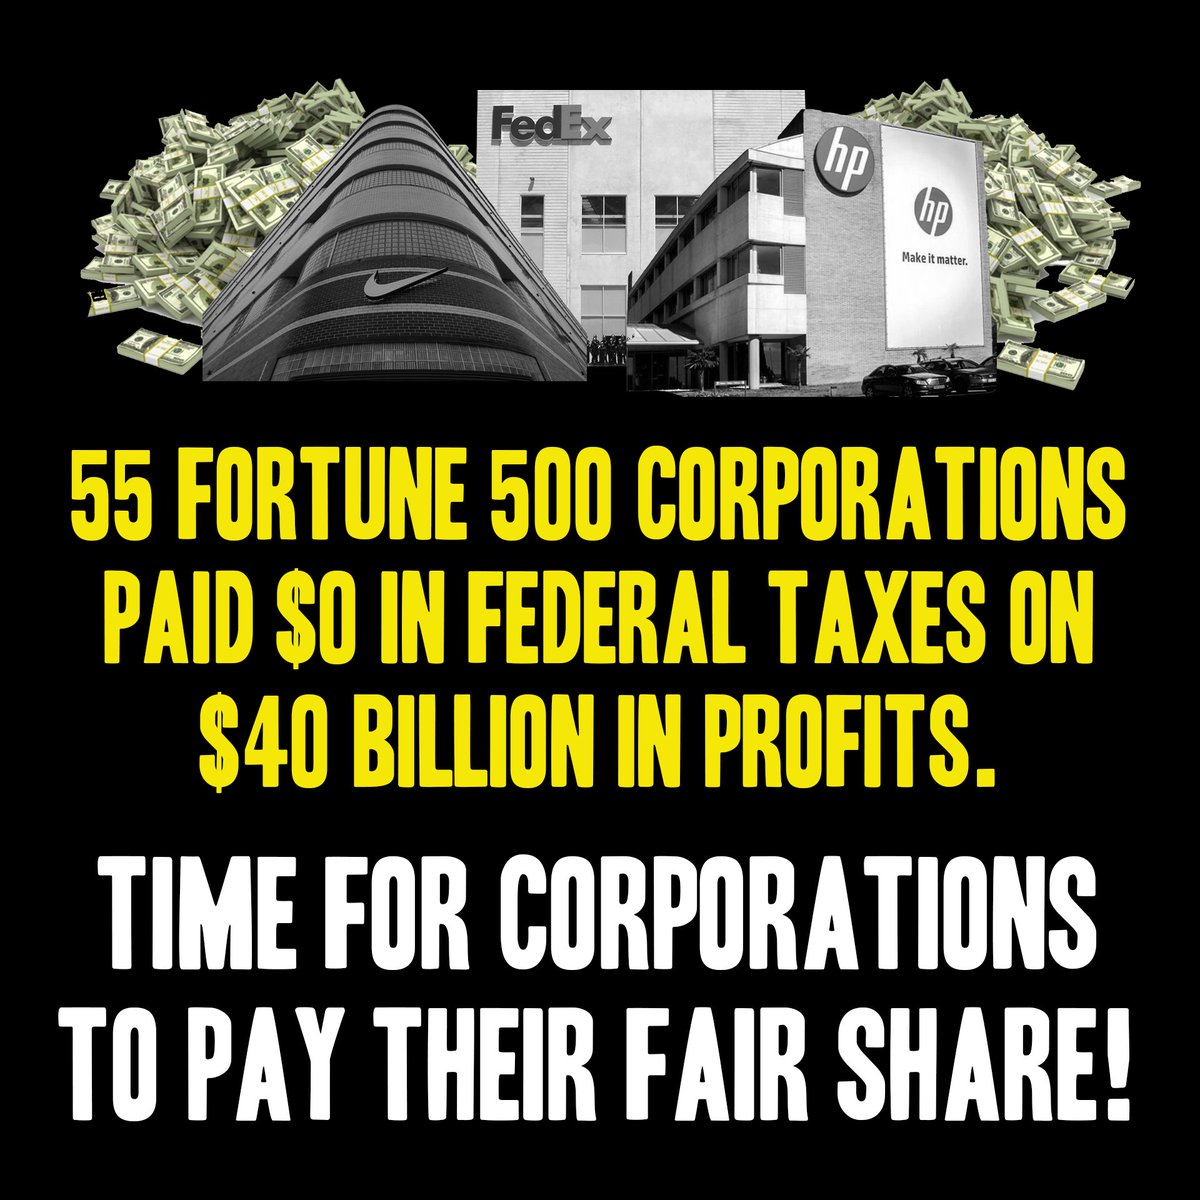 Billionaires and corporations are getting away with paying $0 in federal income taxes while teachers and nurses pay their fair share. Wealthy tax cheats cost us $163 billion a year. That's what we're talking about when we say it's time for our tax code to #RewardWorkNotWealth.